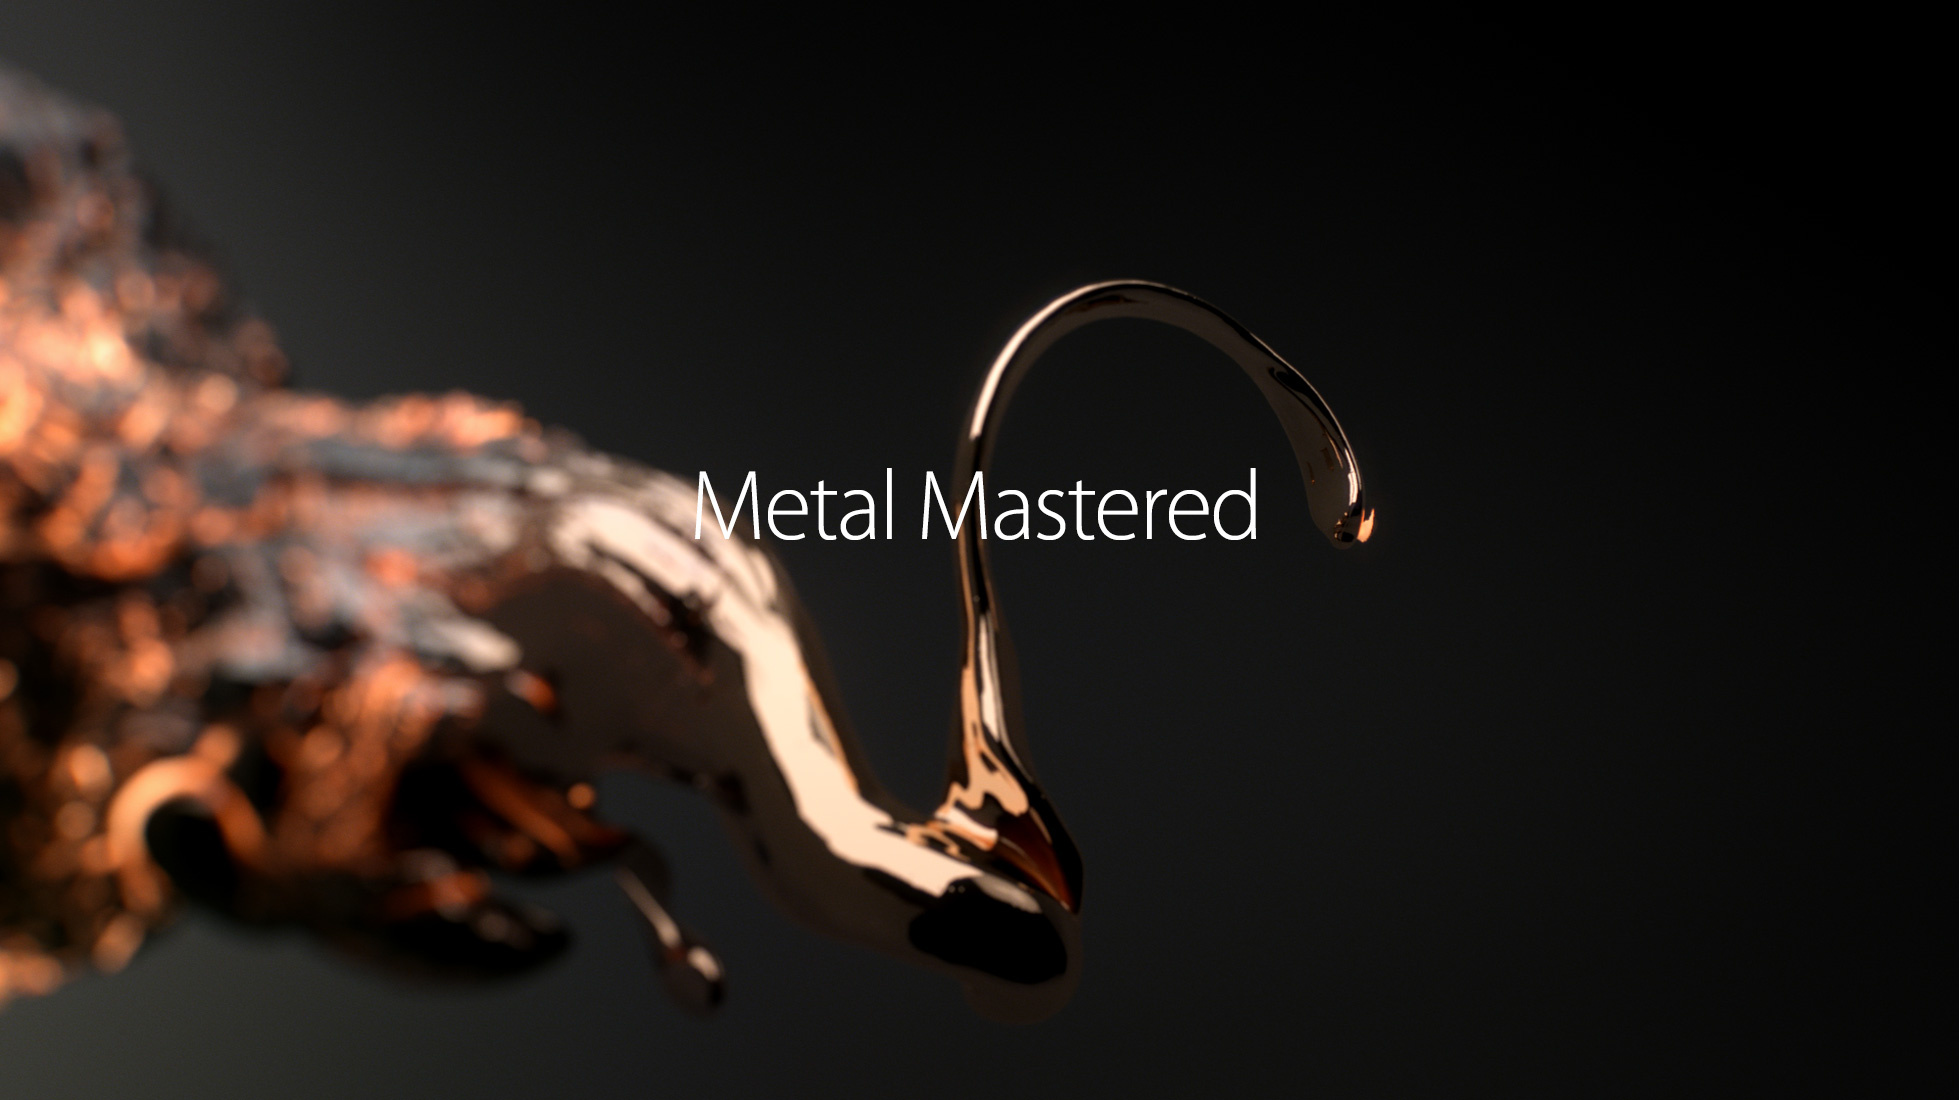 iPhone 5s - Metal Mastered